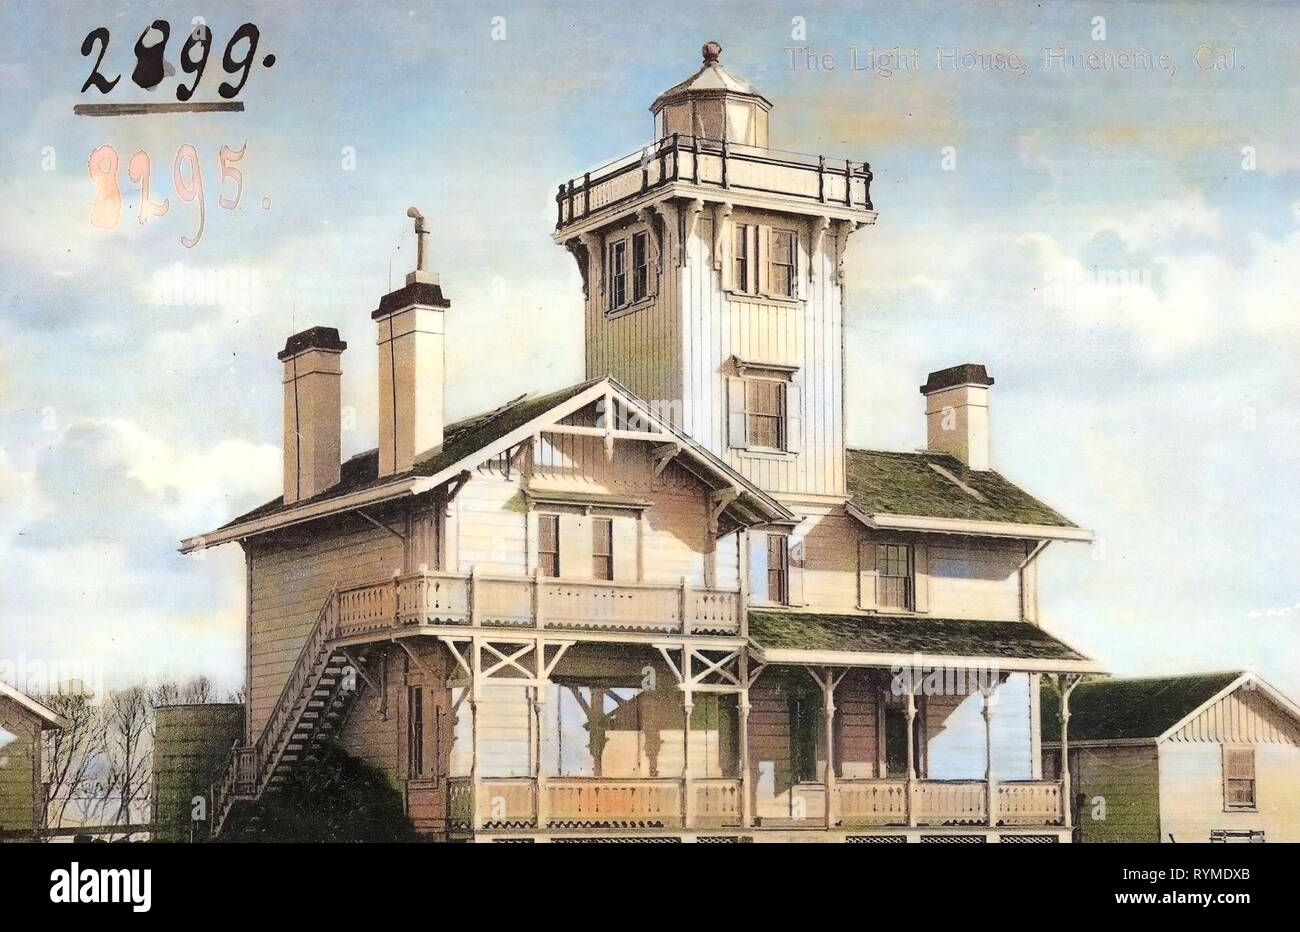 Lighthouses in California, Ventura County, California, 1906, Hueneme, Cal., The light House', United States of America - Stock Image